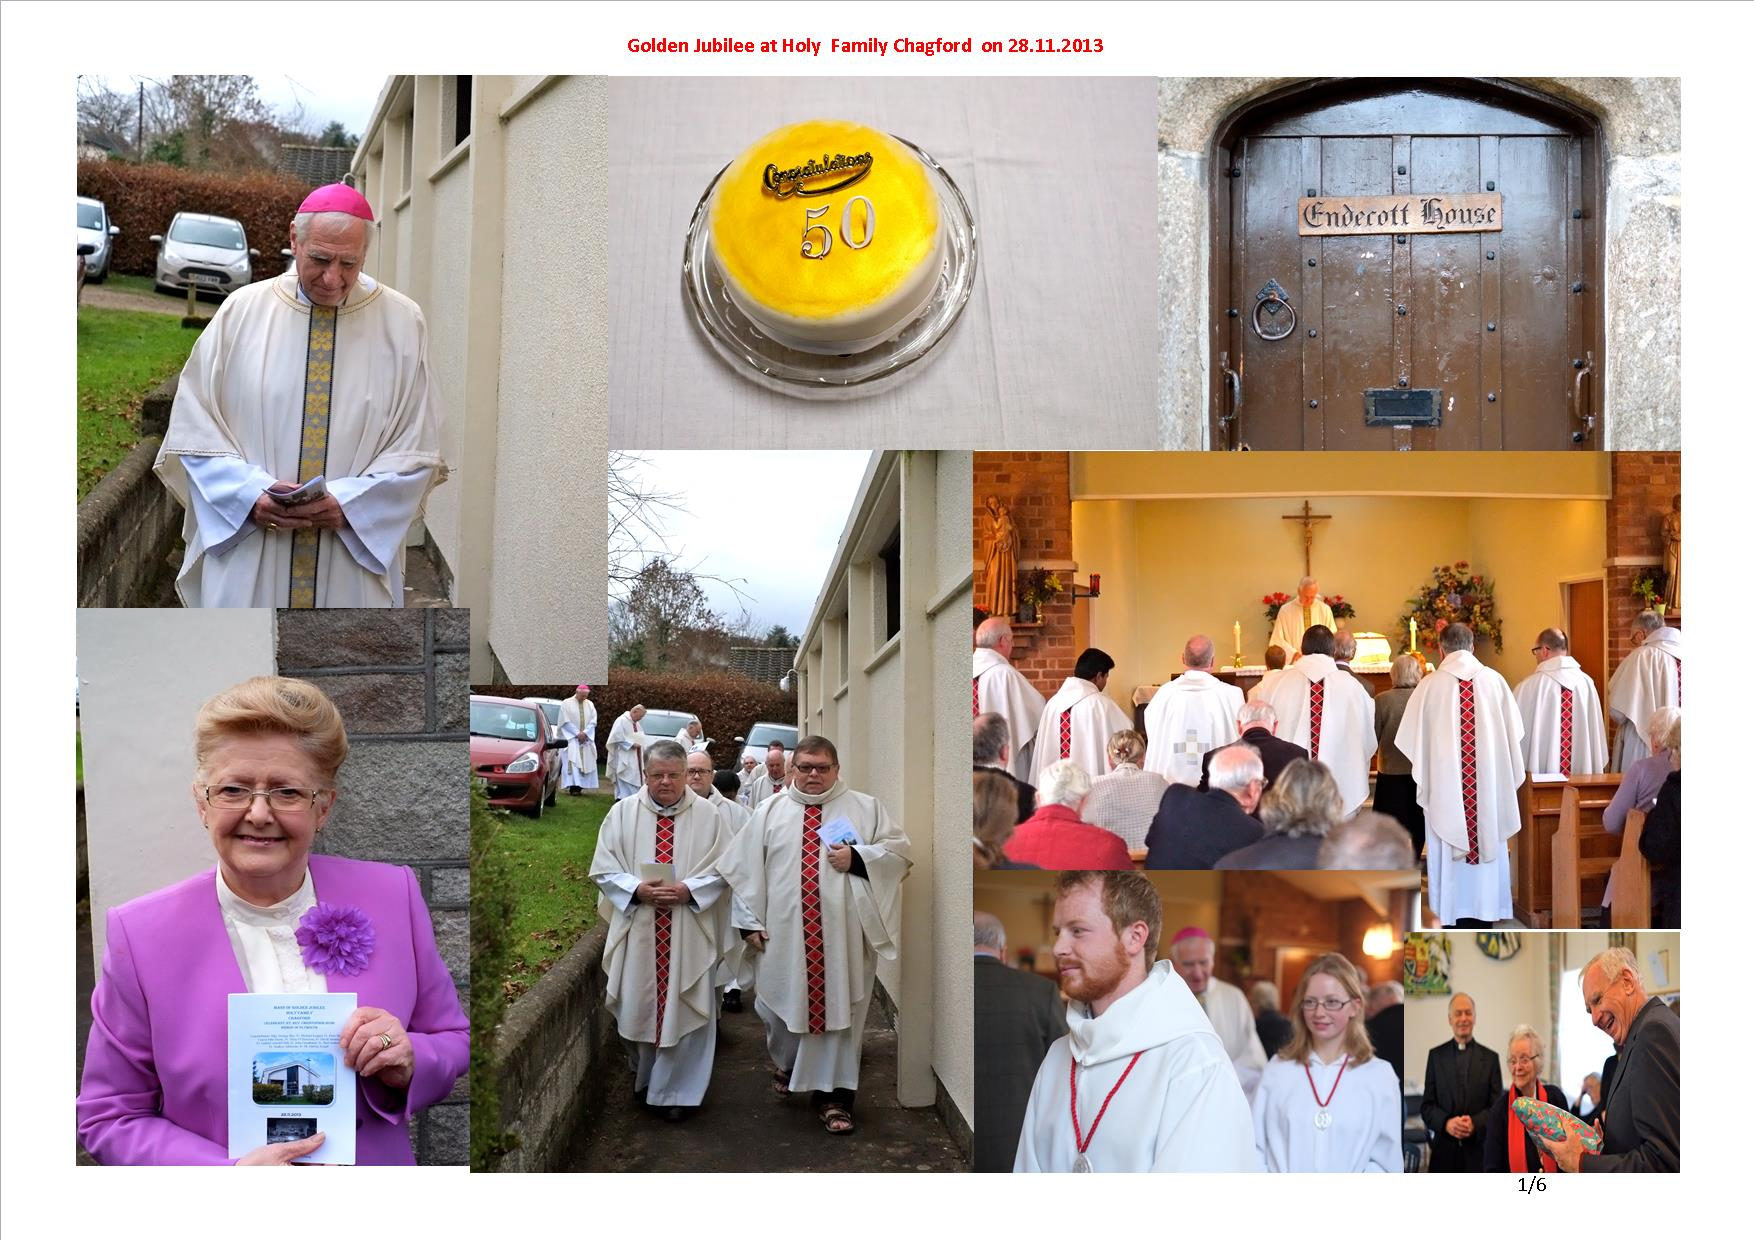 jubilee-celebration-at-holy-famil-chagford-28-11-2013-01